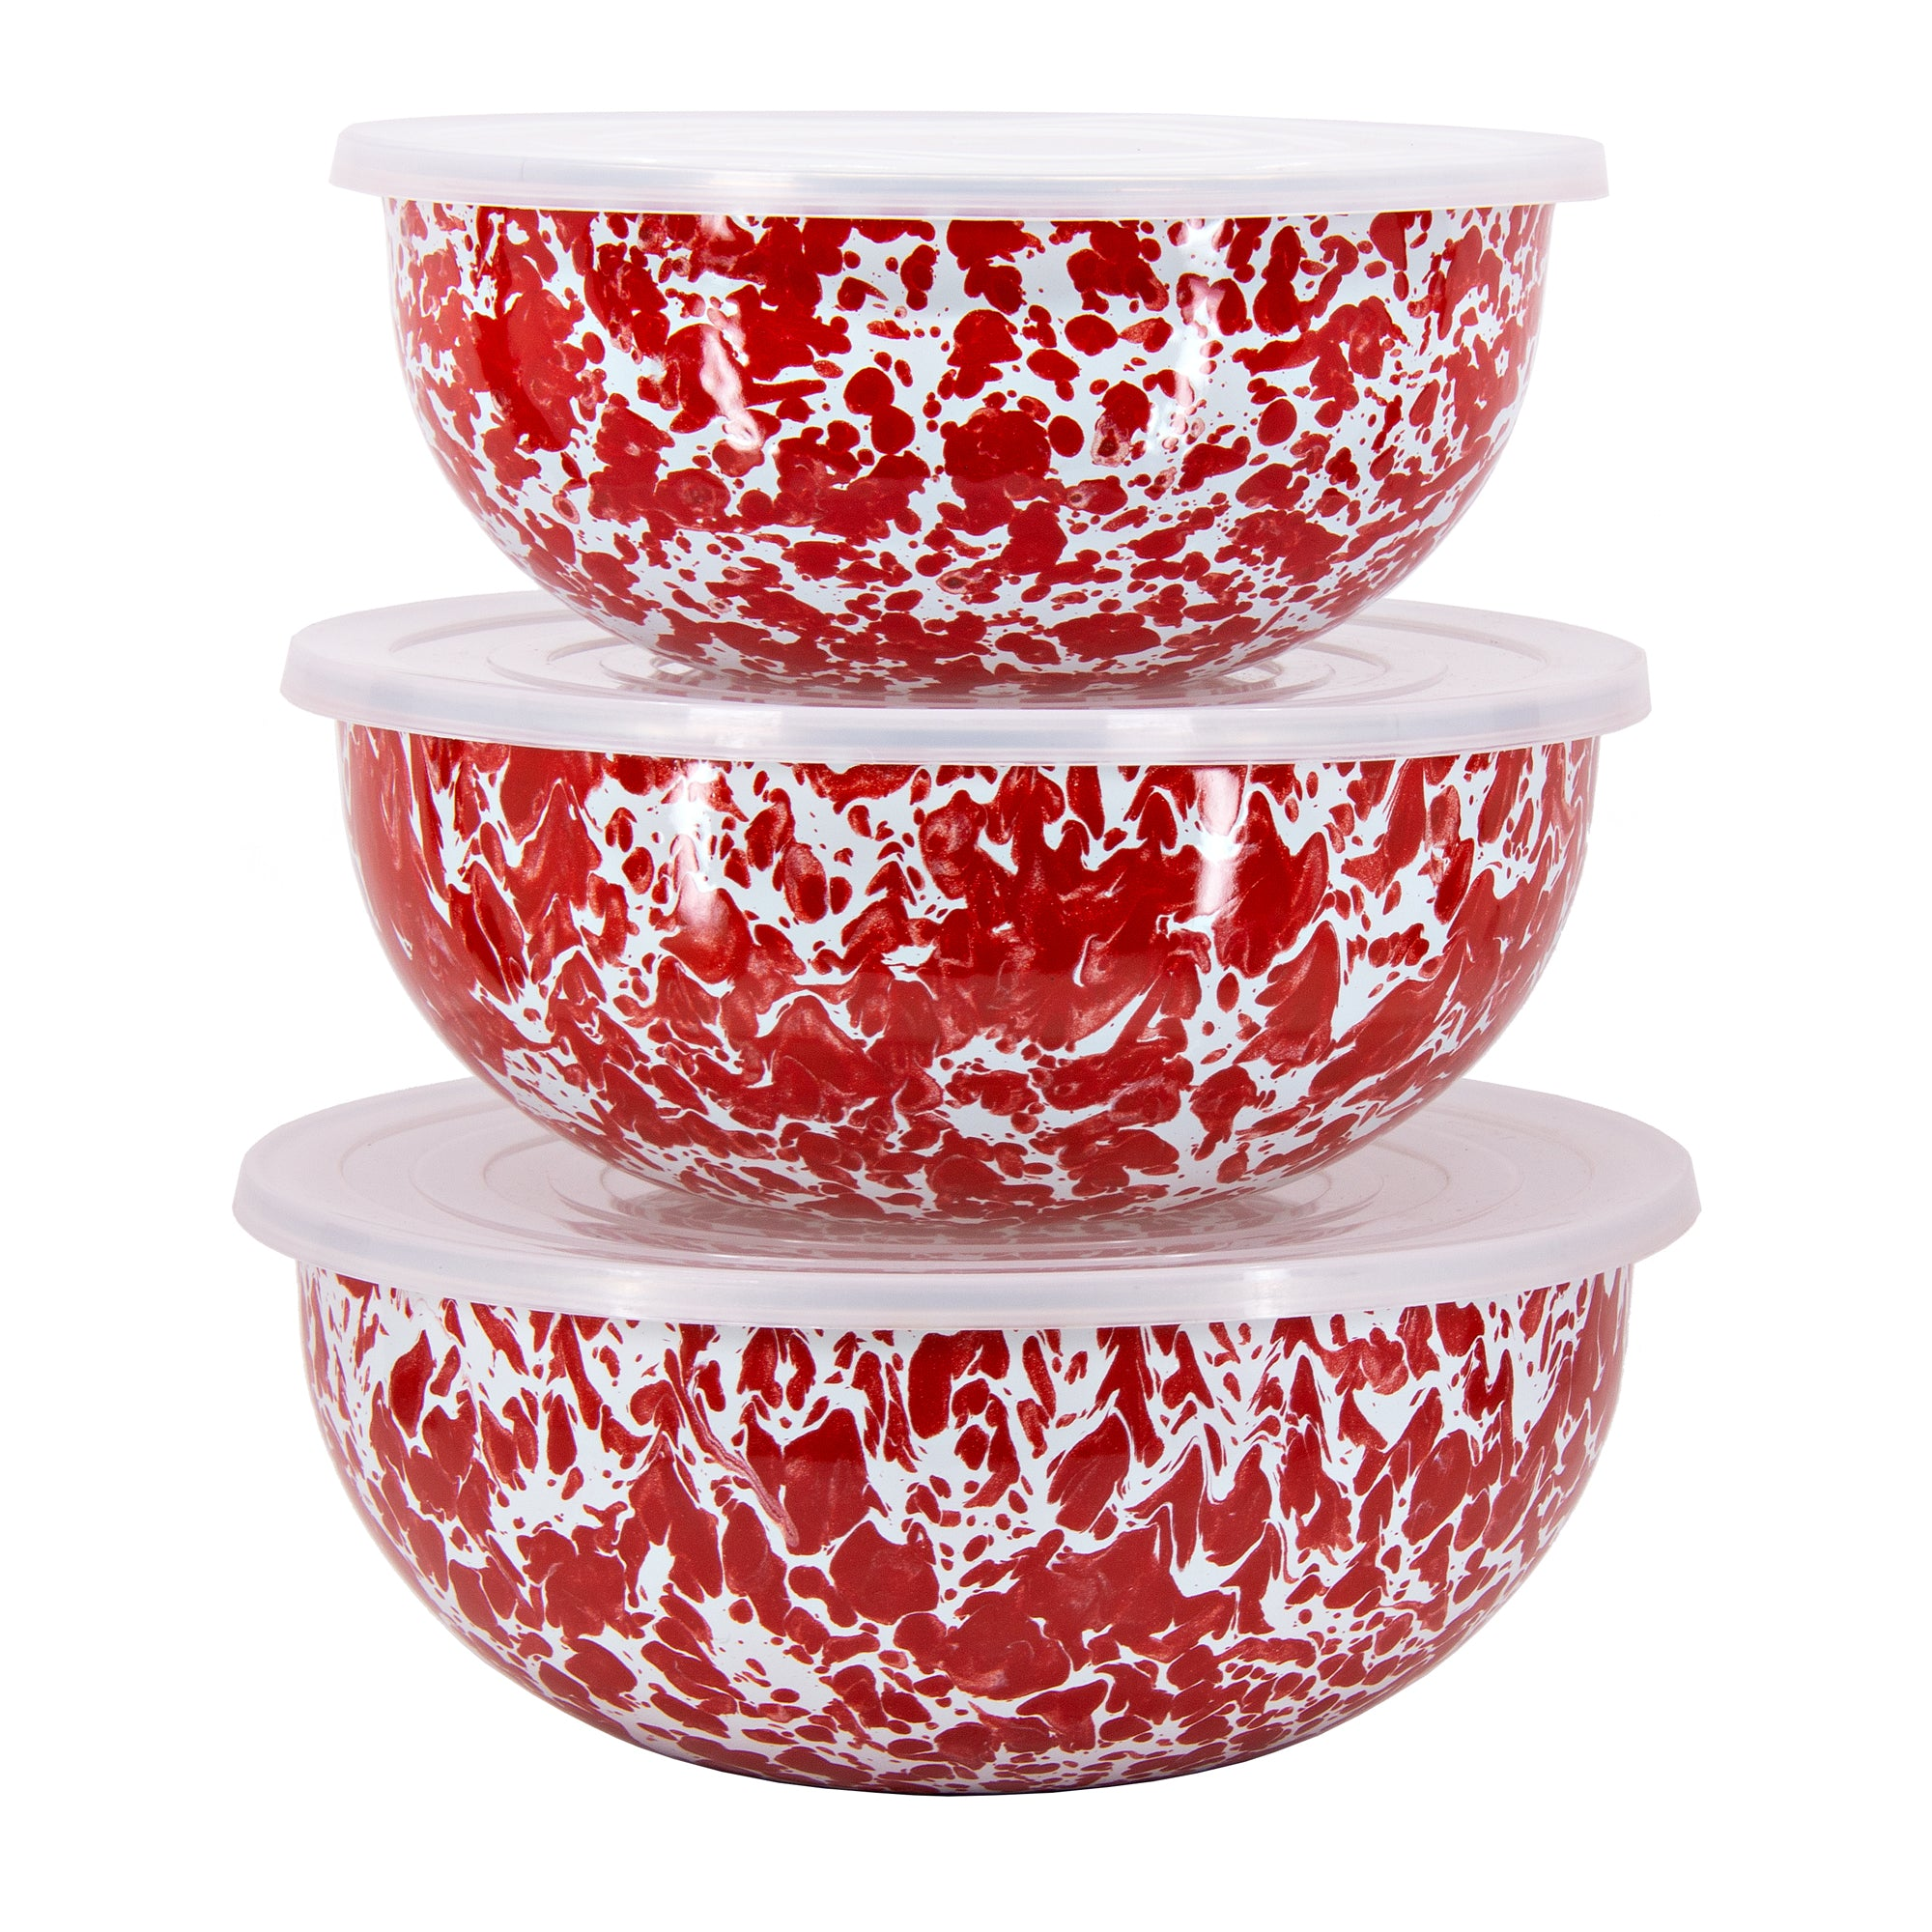 RD54 - Red Swirl Mixing Bowls Image 2